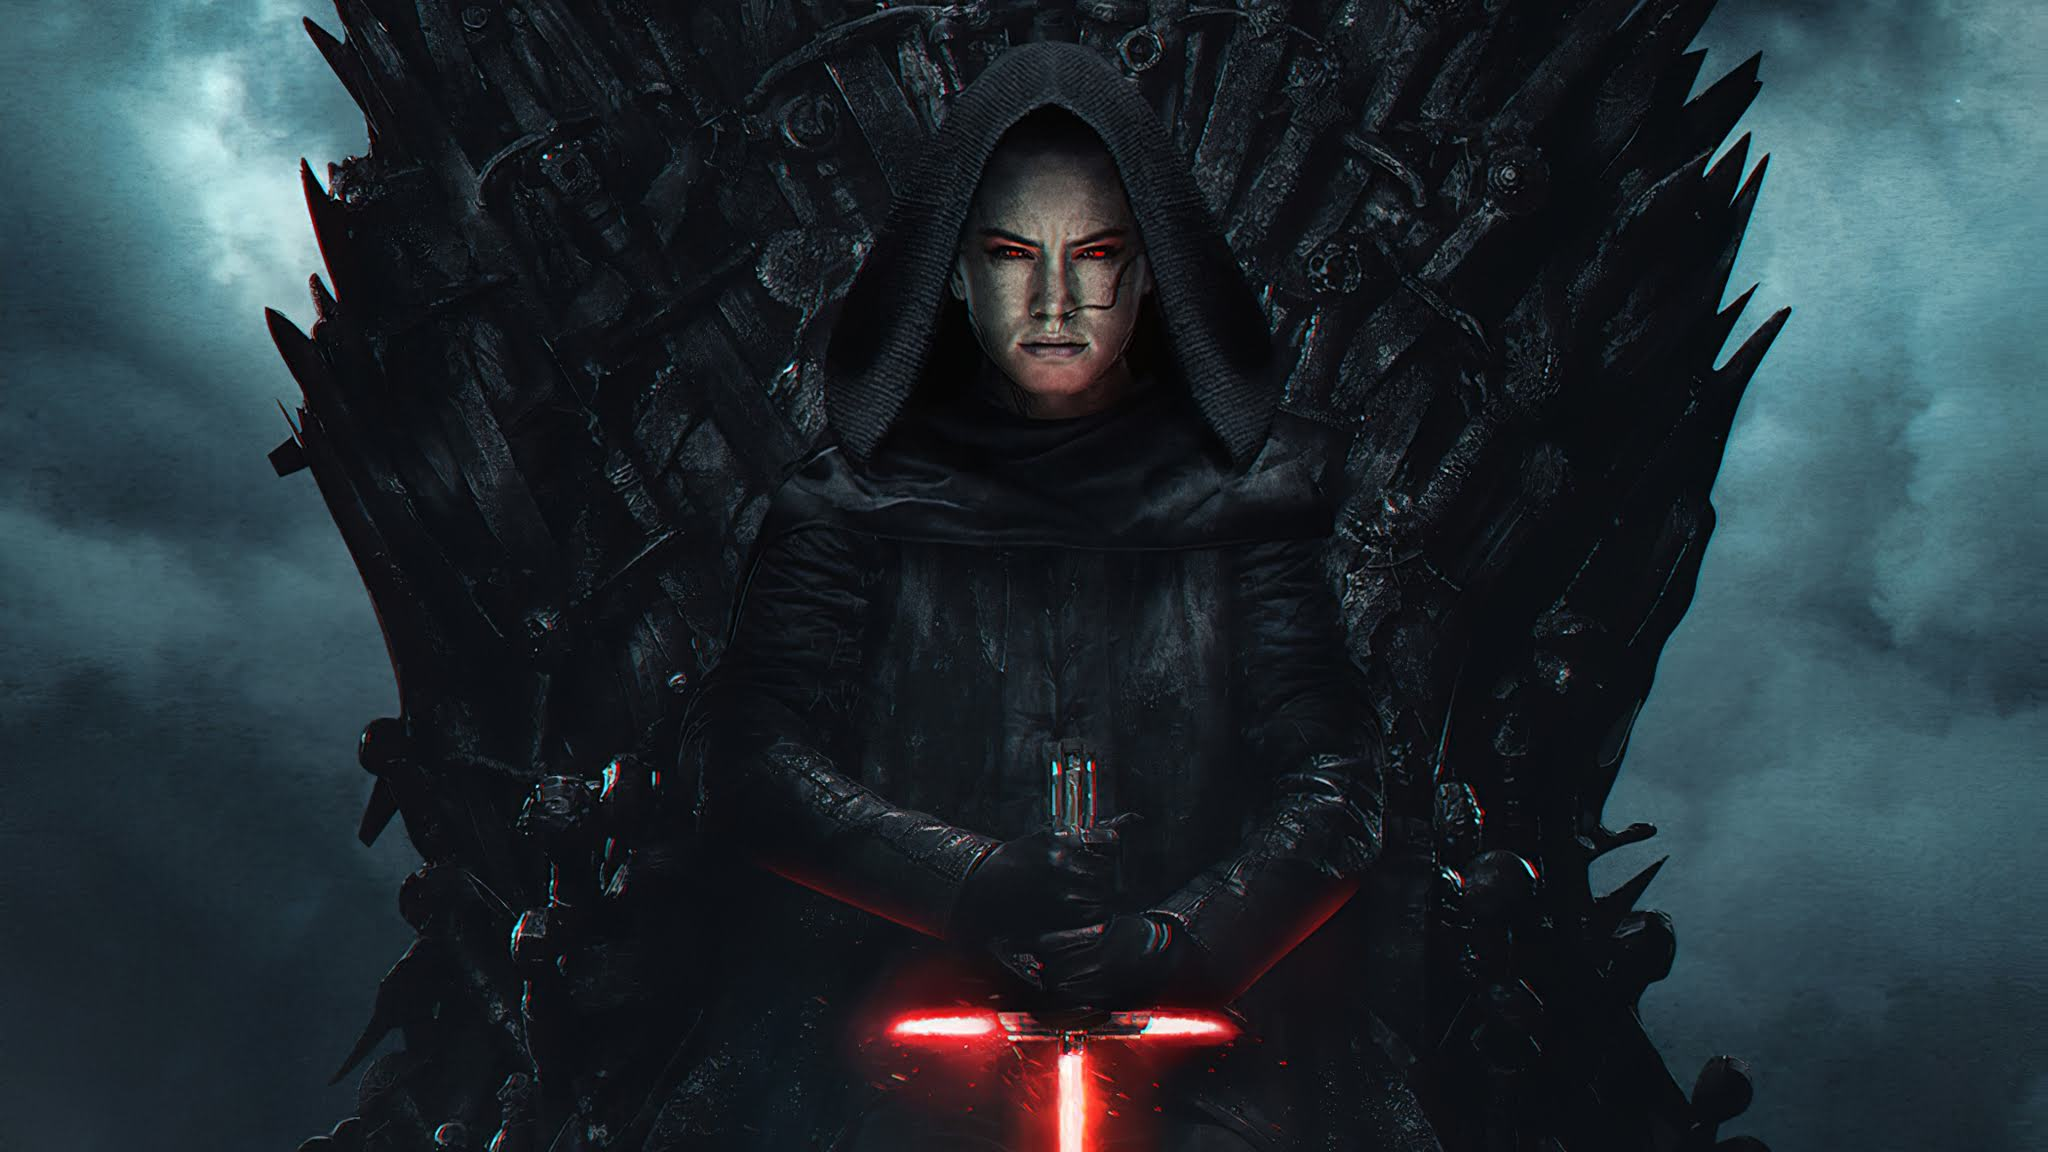 Wallpaper 4k Dark Rey Starwars